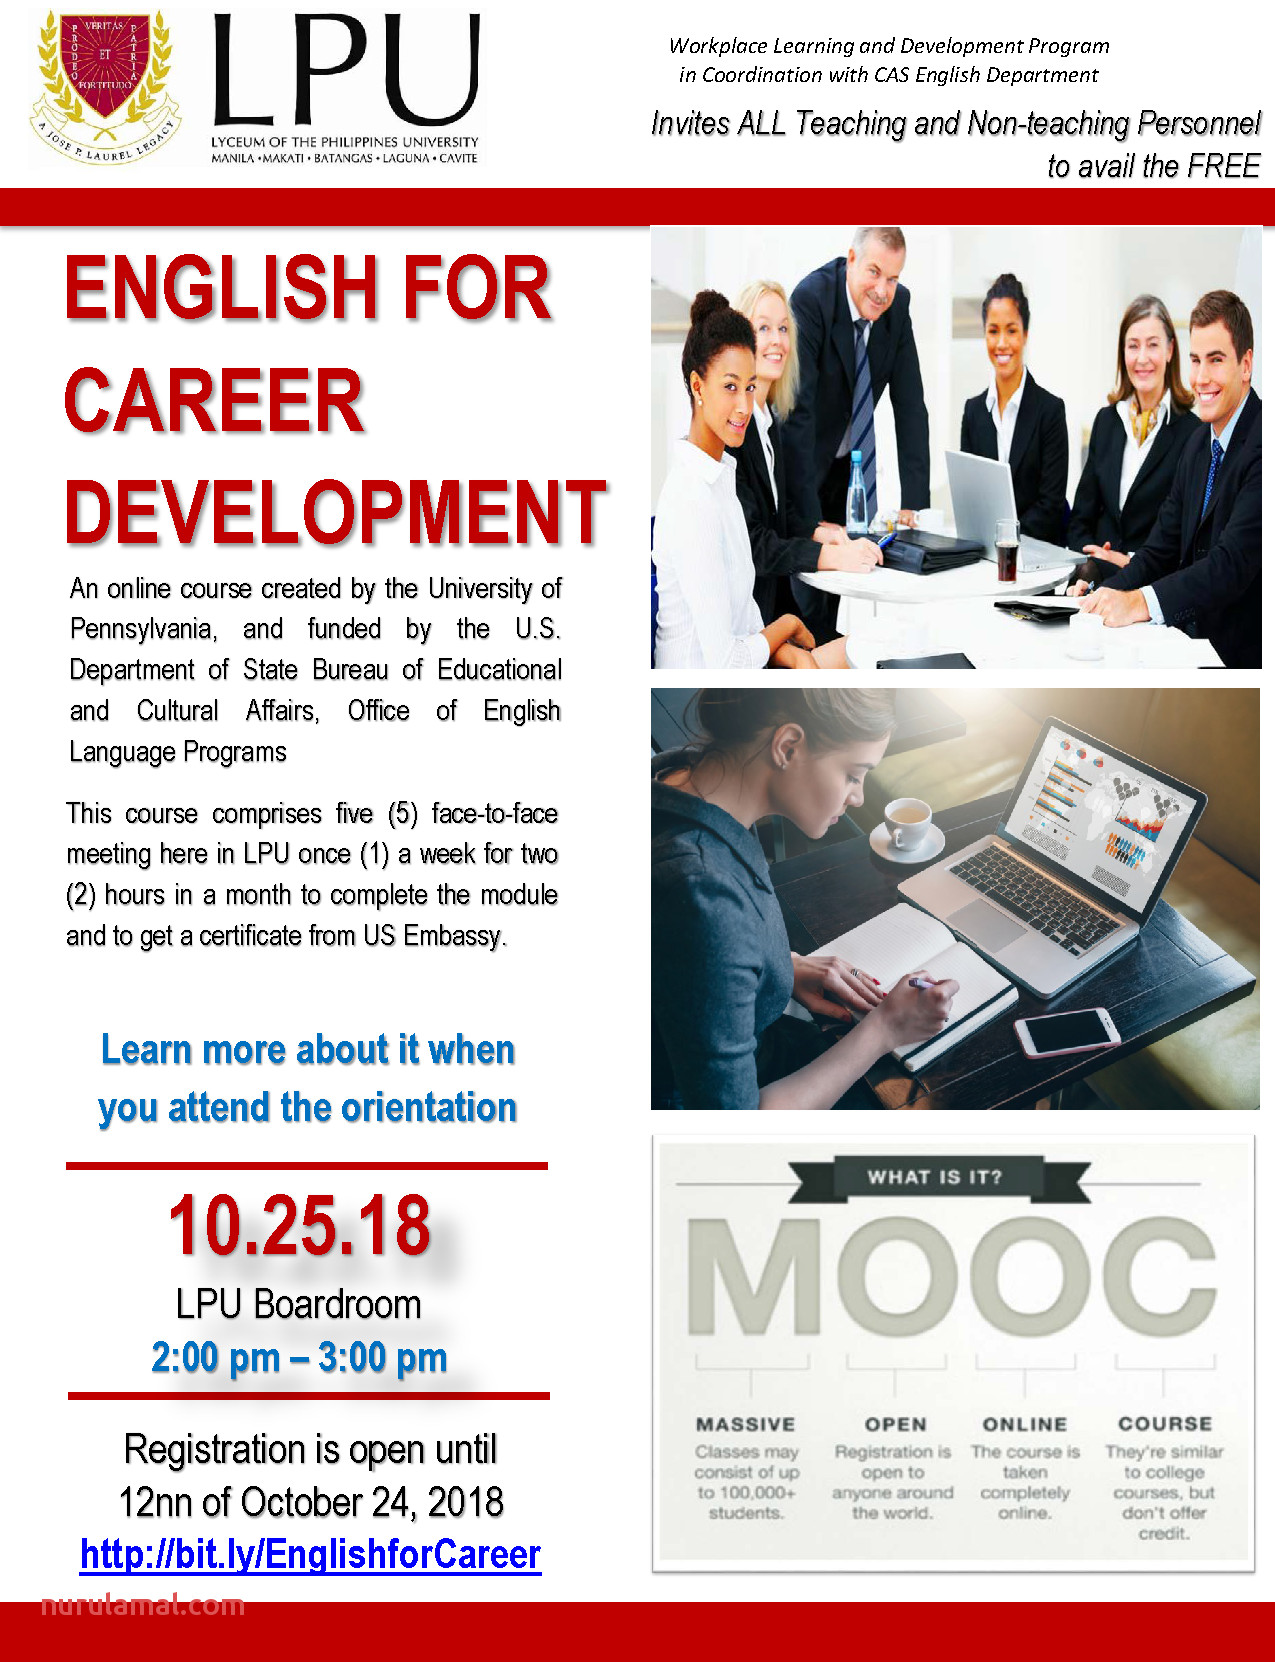 Lpu Manila Campus English for Career Development